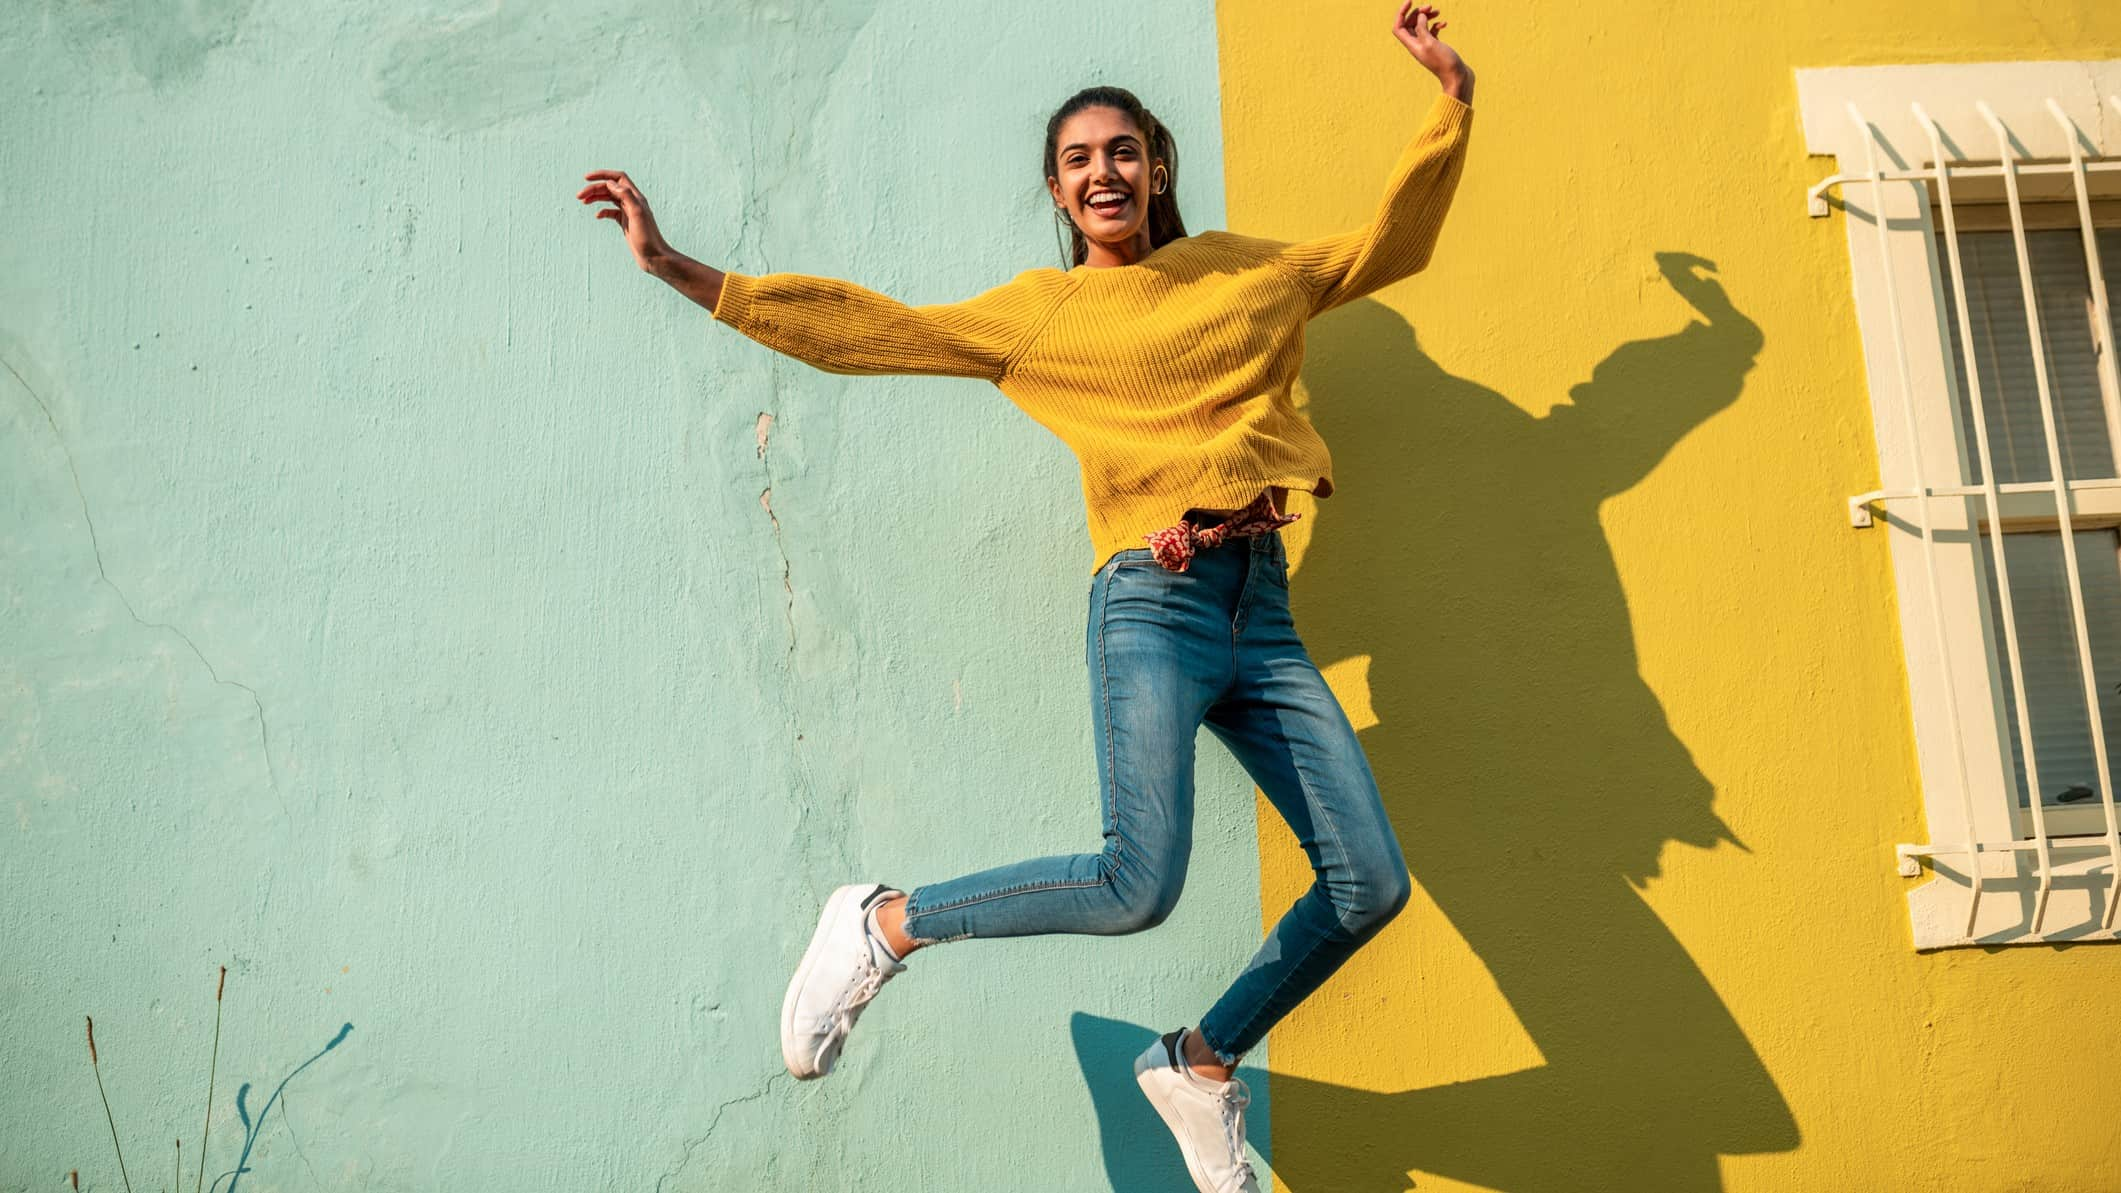 rising asx share price represented by woman jumping in the air happily